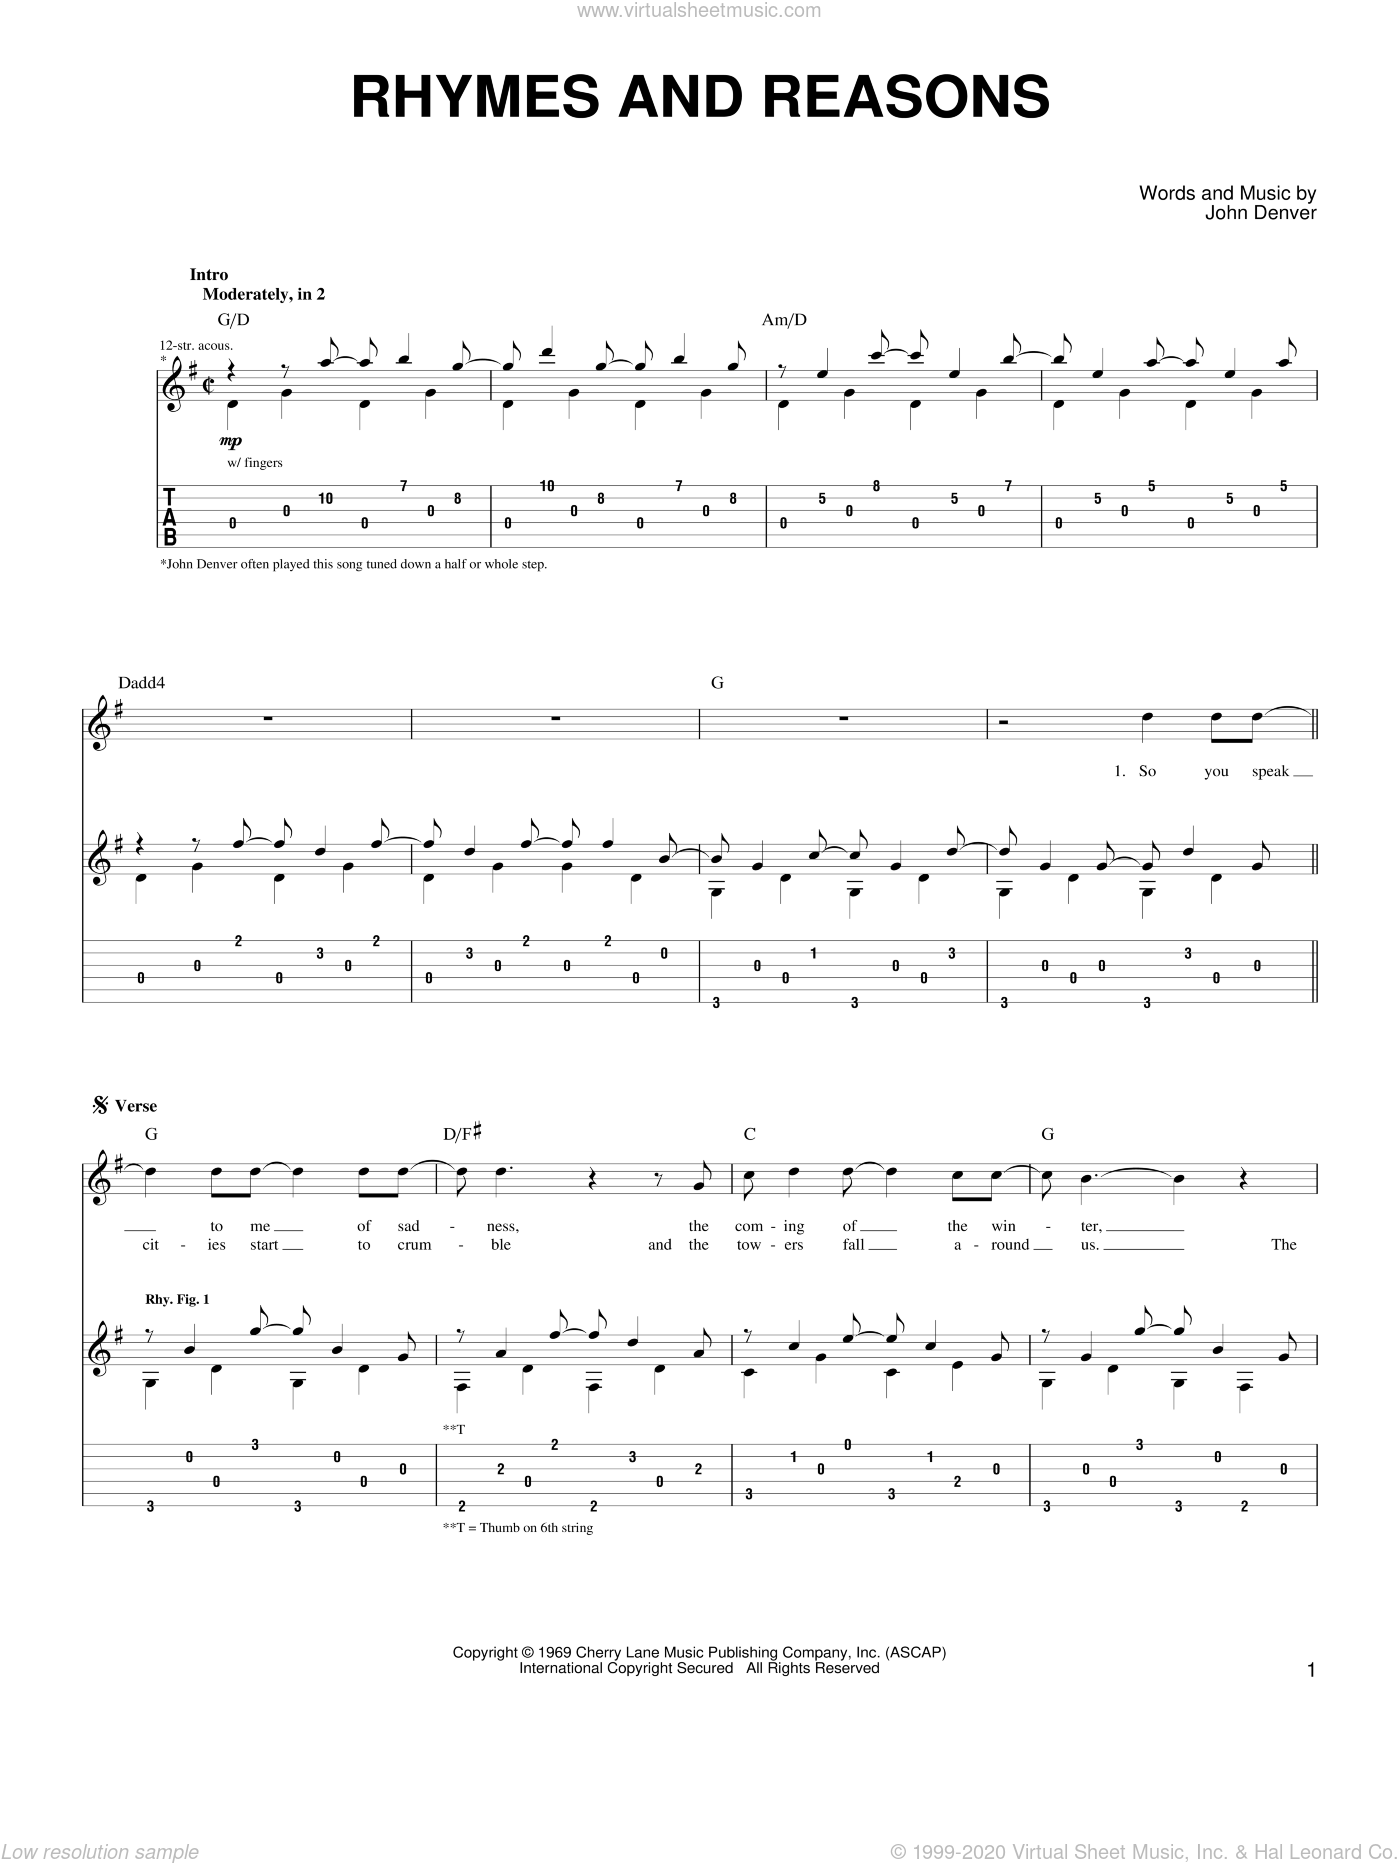 Rhymes And Reasons sheet music for guitar (tablature) by John Denver, intermediate skill level